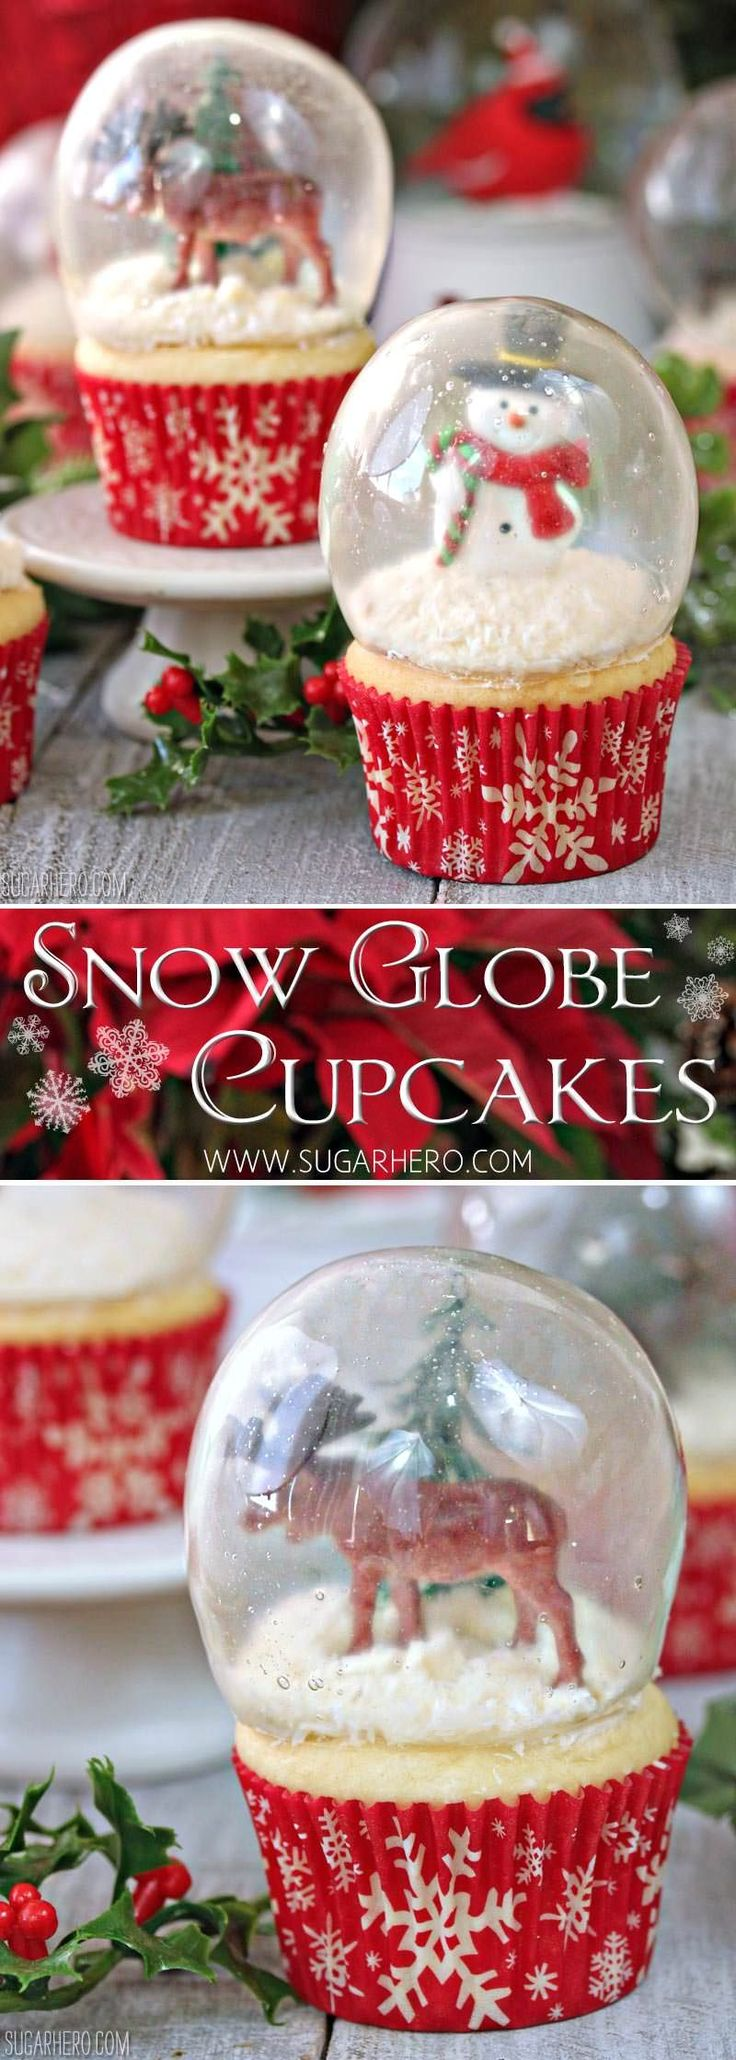 Snow Globe Cupcakes - the BEST Christmas cupcakes! Made with gelatin bubbles, so the entire cupcake is edible! | From SugarHero.com(Creative Baking)